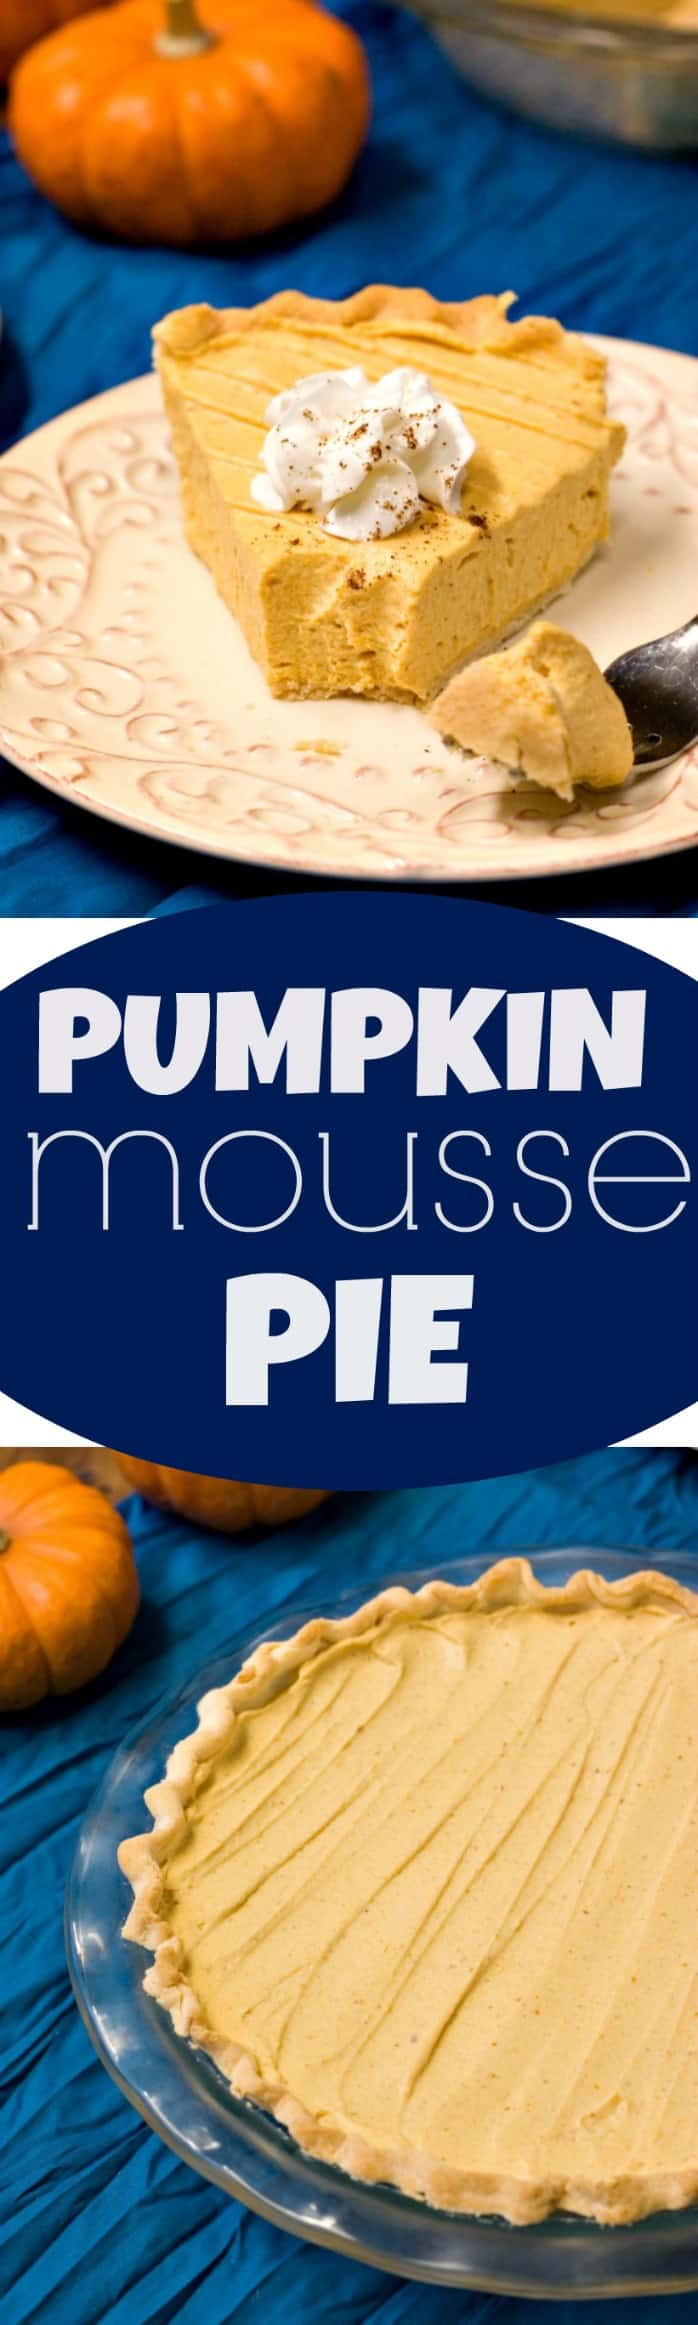 Pumpkin Mousse Pie - Crunchy Creamy Sweet